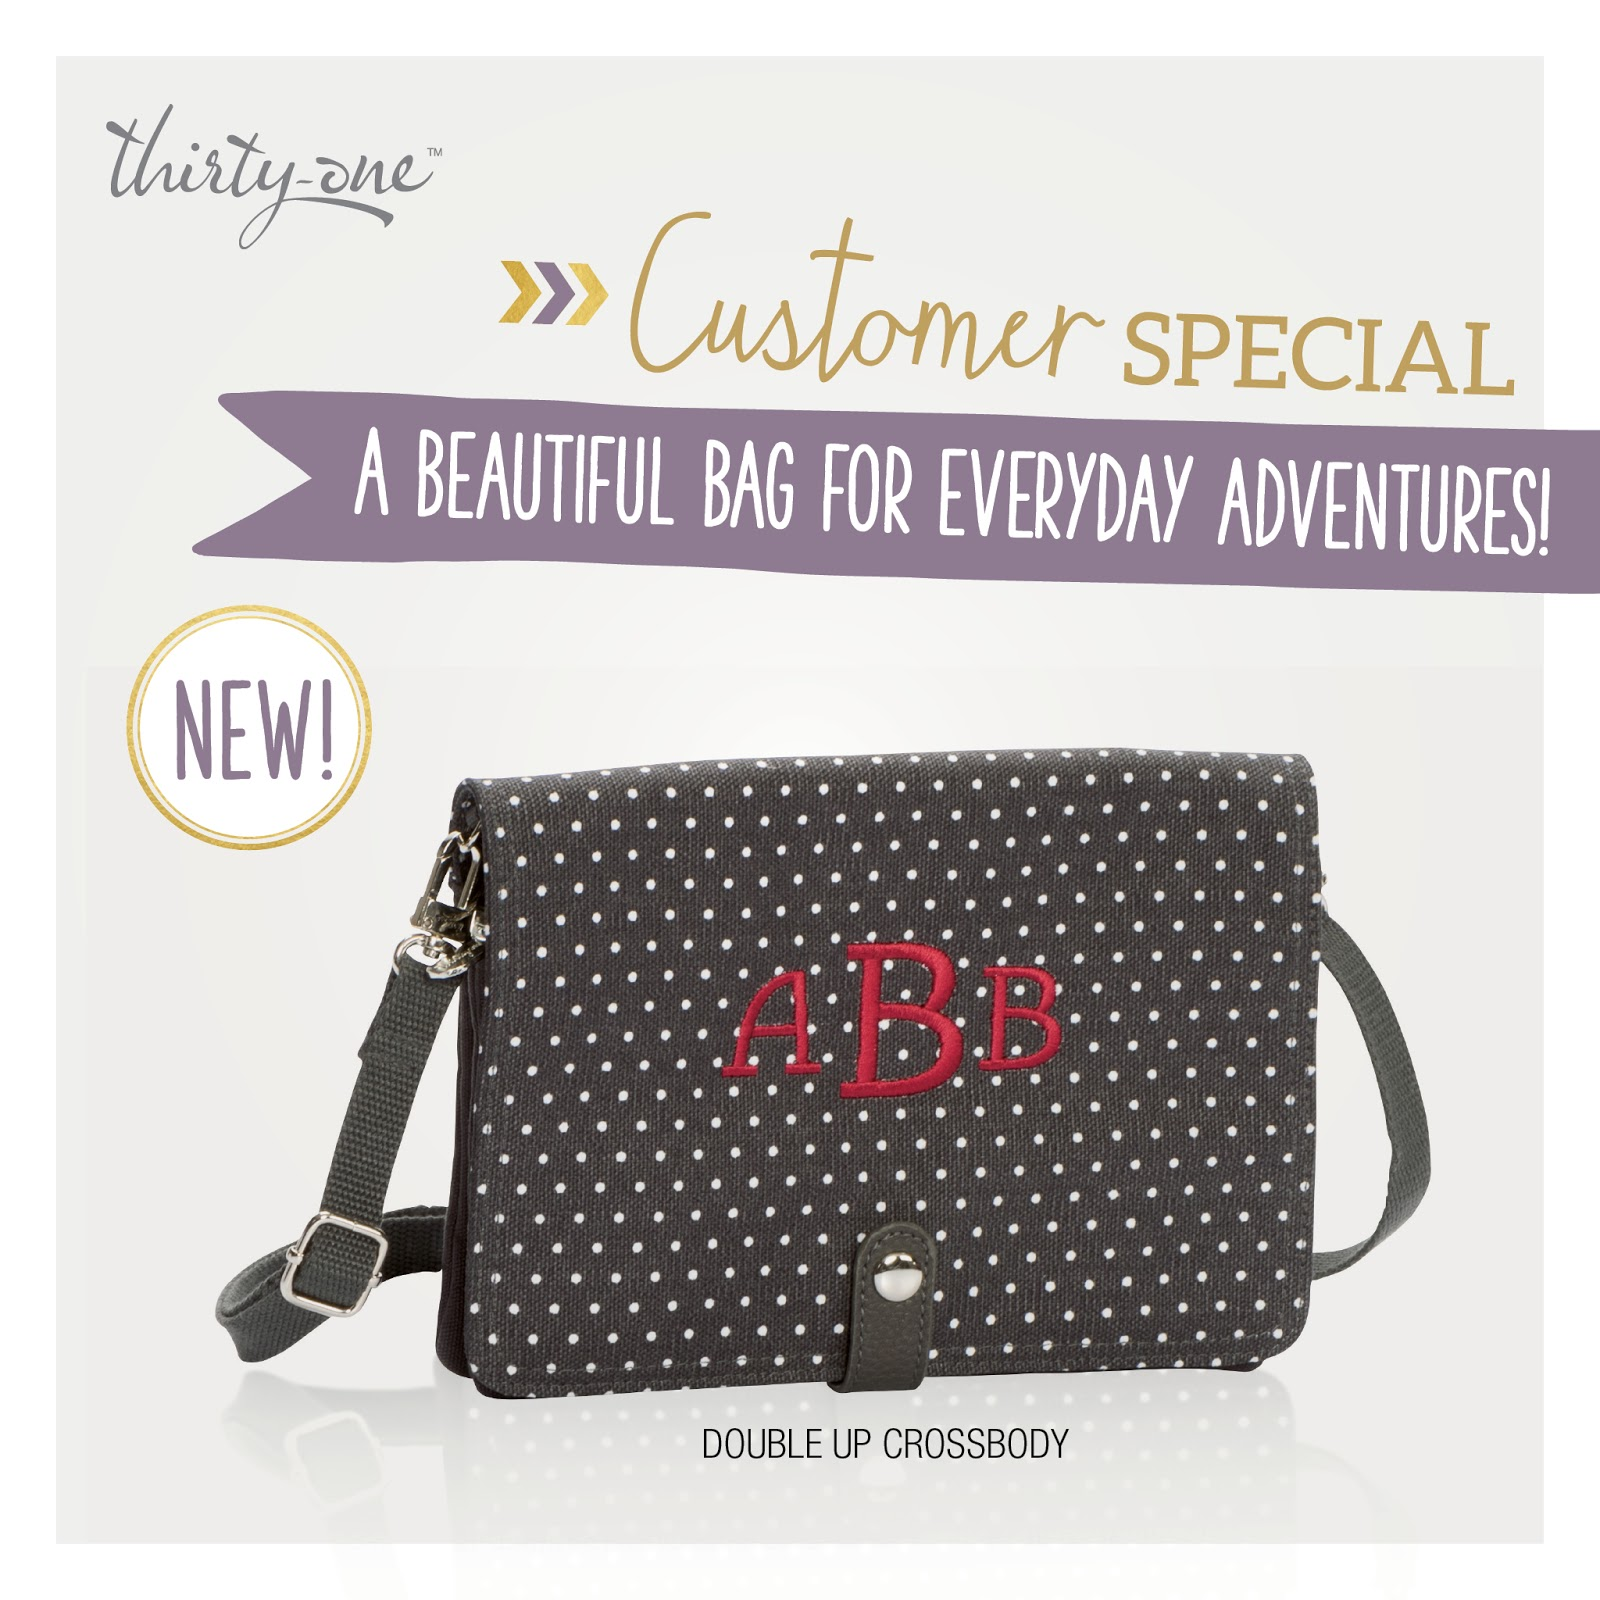 Thirty one november customer special 2014 - Ugly Purse Party Good Morning Thirty One